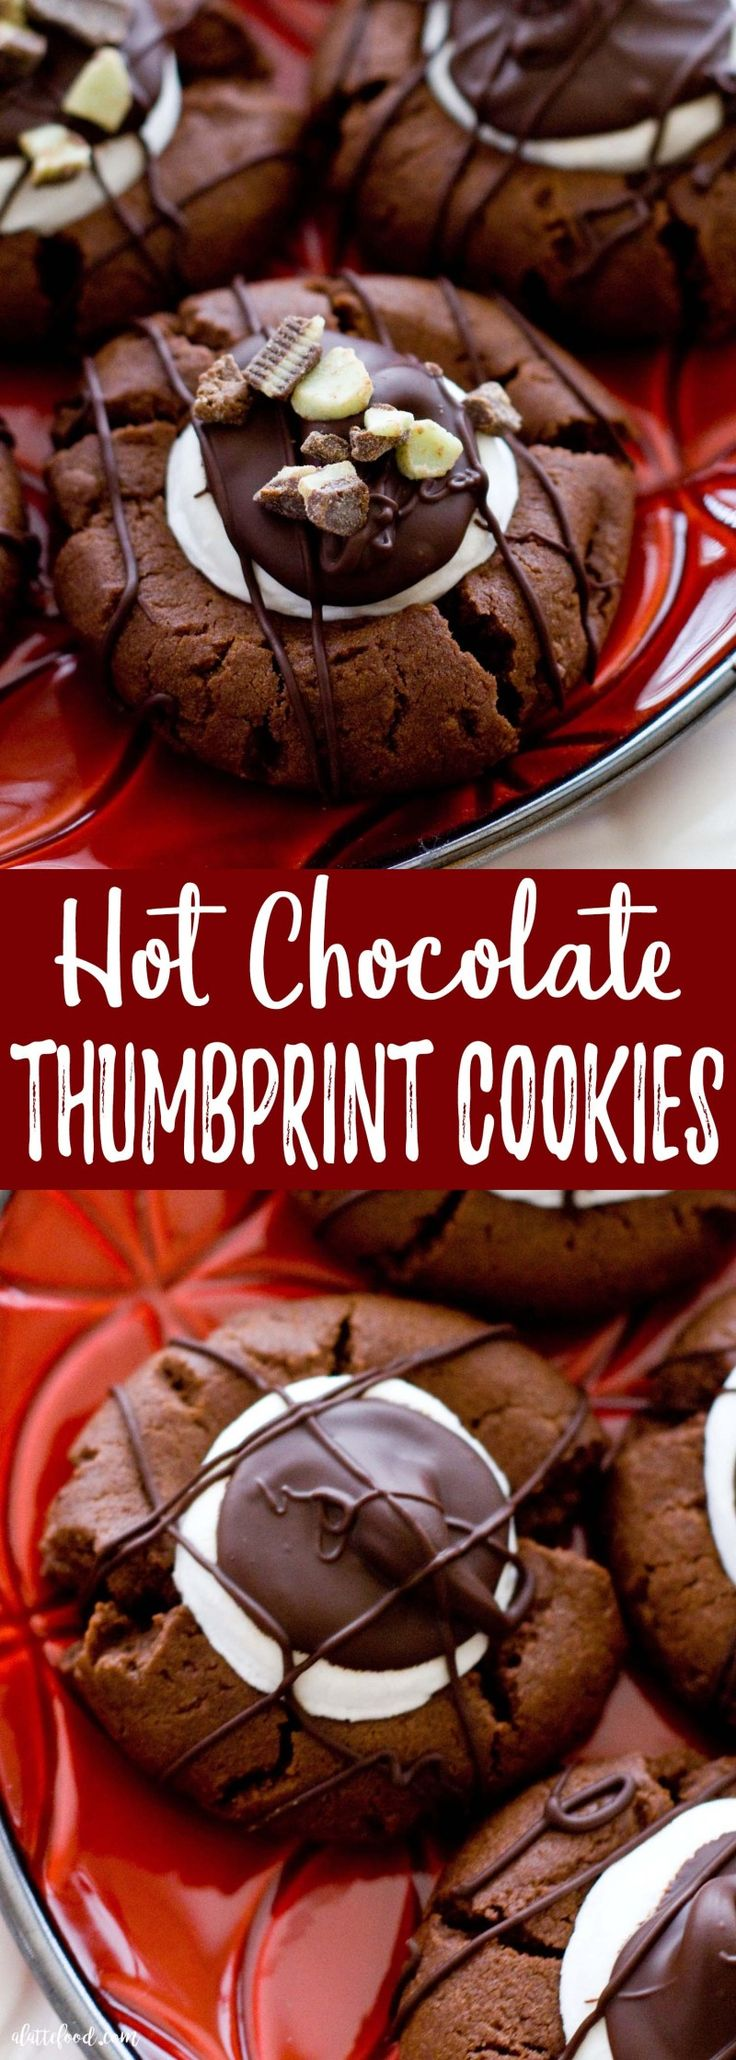 Making hot chocolate for a crowd - These Hot Chocolate Thumbprint Cookies Taste Like Homemade Hot Chocolate In The Form Of A Chewy Chocolate Cookie They Re Intensely Chocolatey